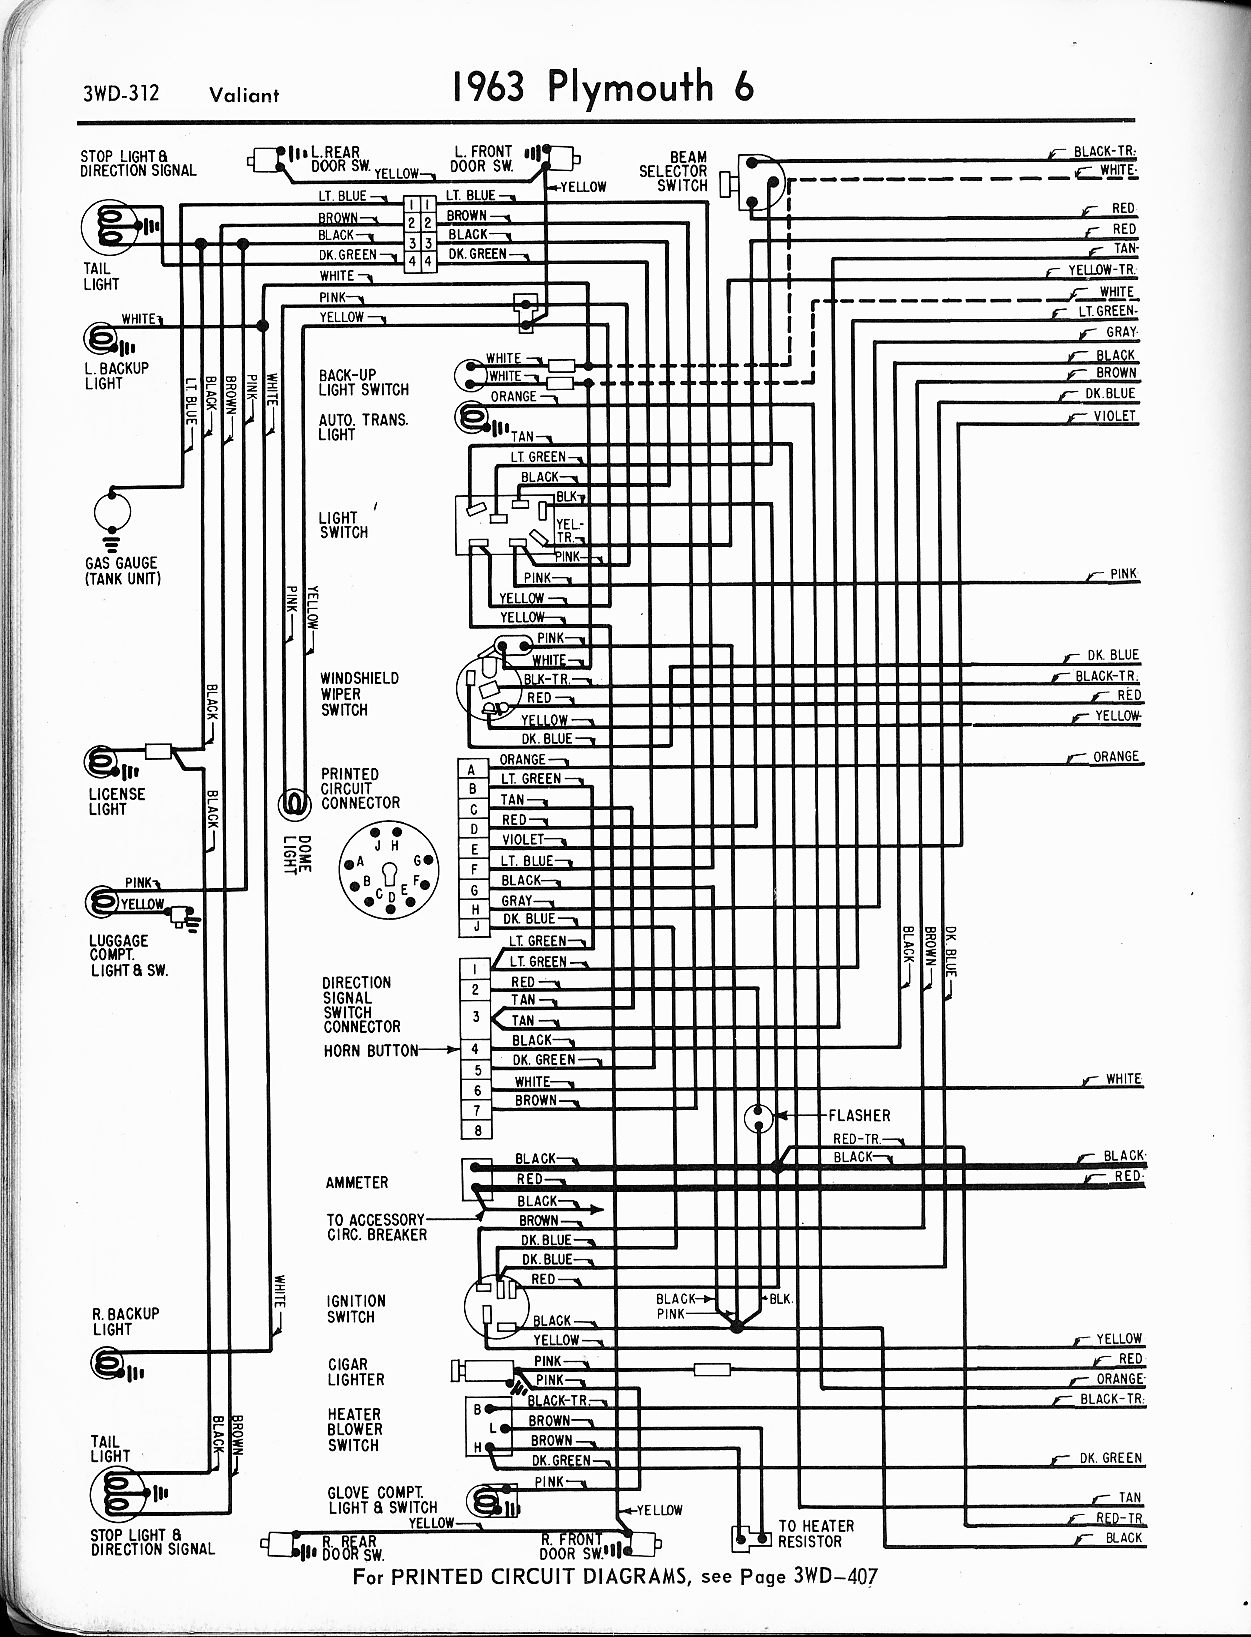 1963 Chrysler Wiring Diagram Schematics Diagrams 1975 Dodge Charger Se 1966 Plymouth Valiant U2022 Rh Parntesis Co 1968